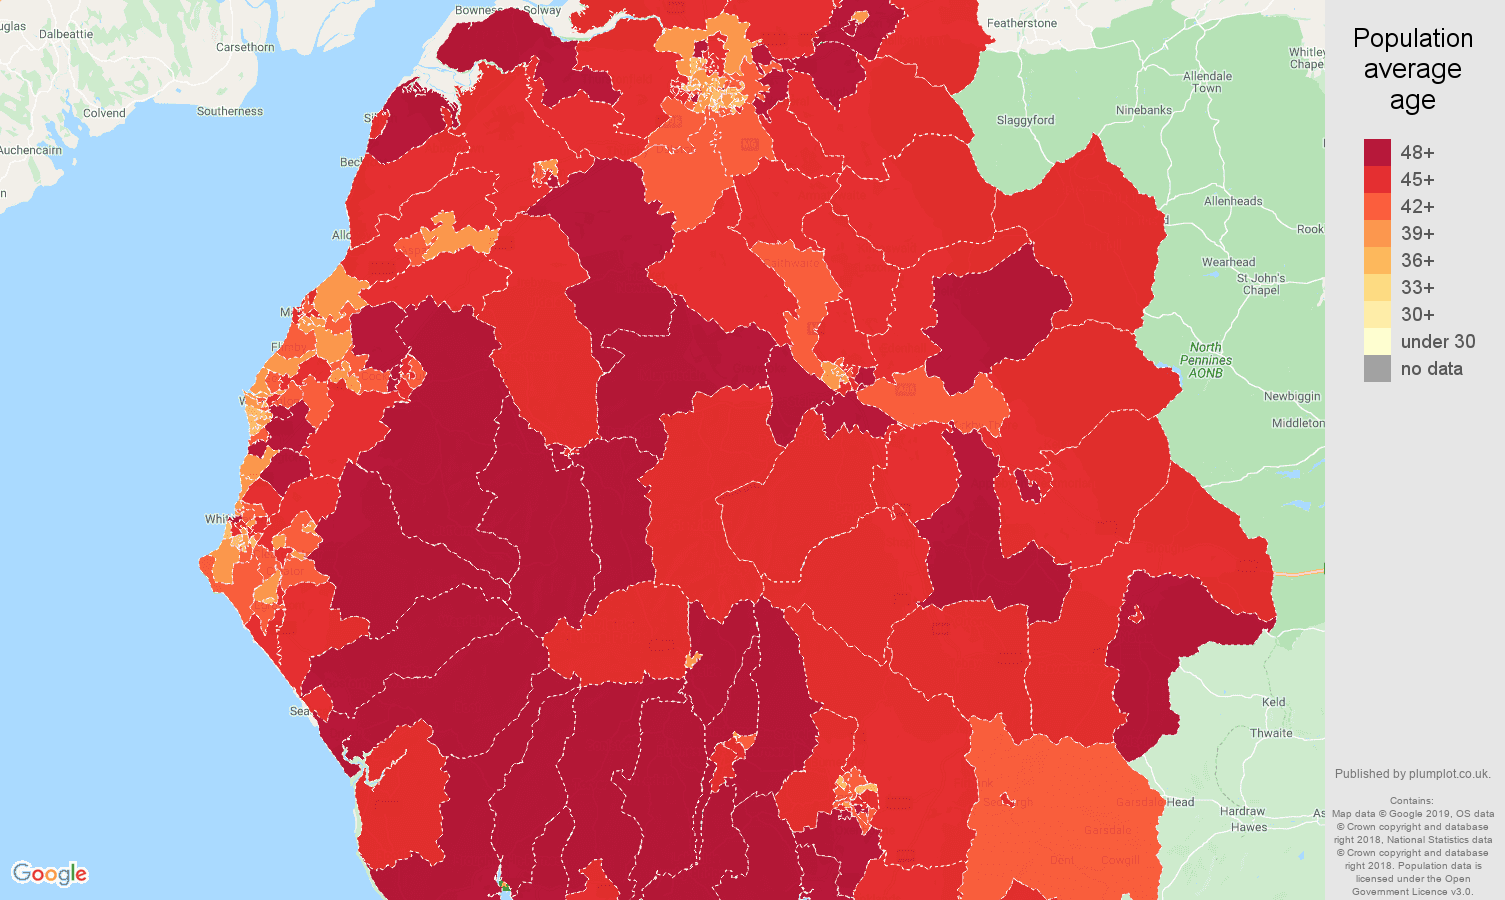 Cumbria population average age map